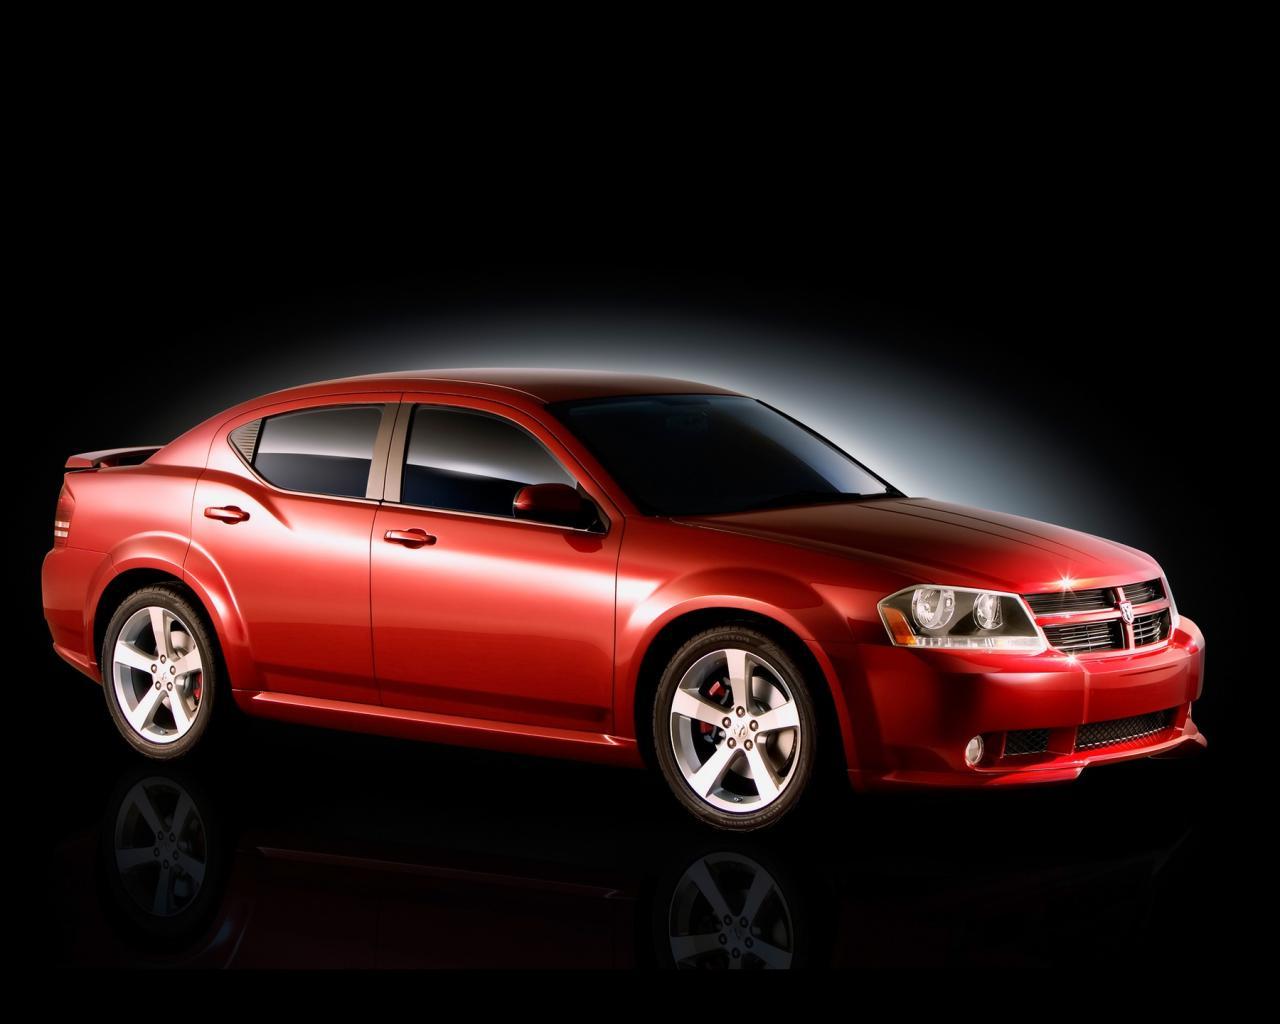 2006 Dodge Avenger Concept Front And Side 1280x1024